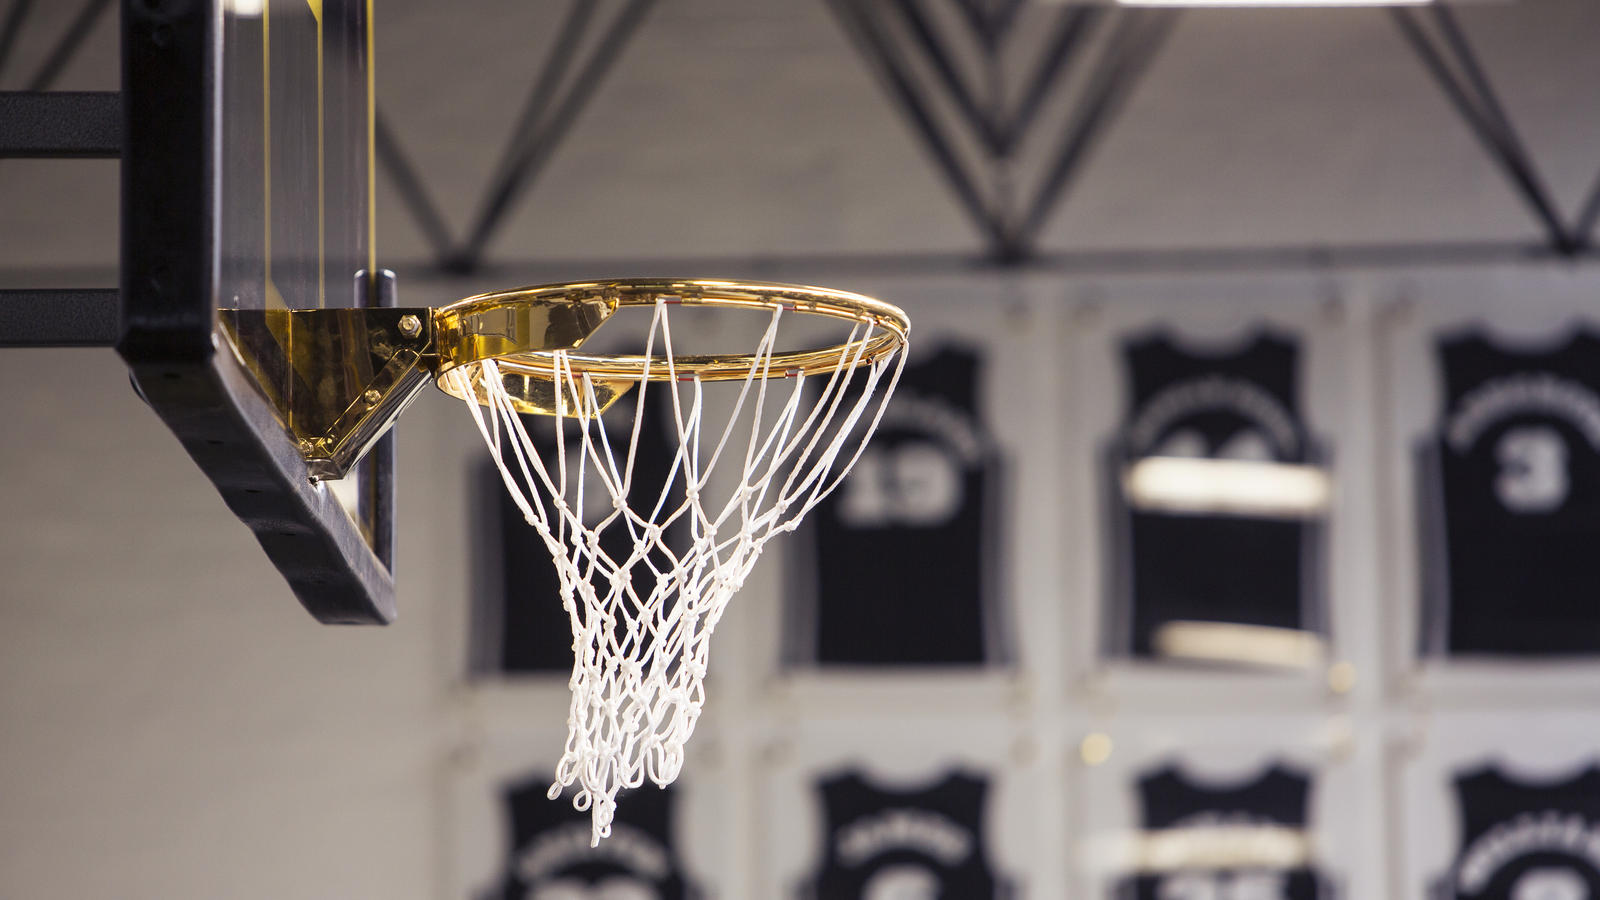 Nike Basketball Hoop: Nike Launches 'The Regal' Basketball Court